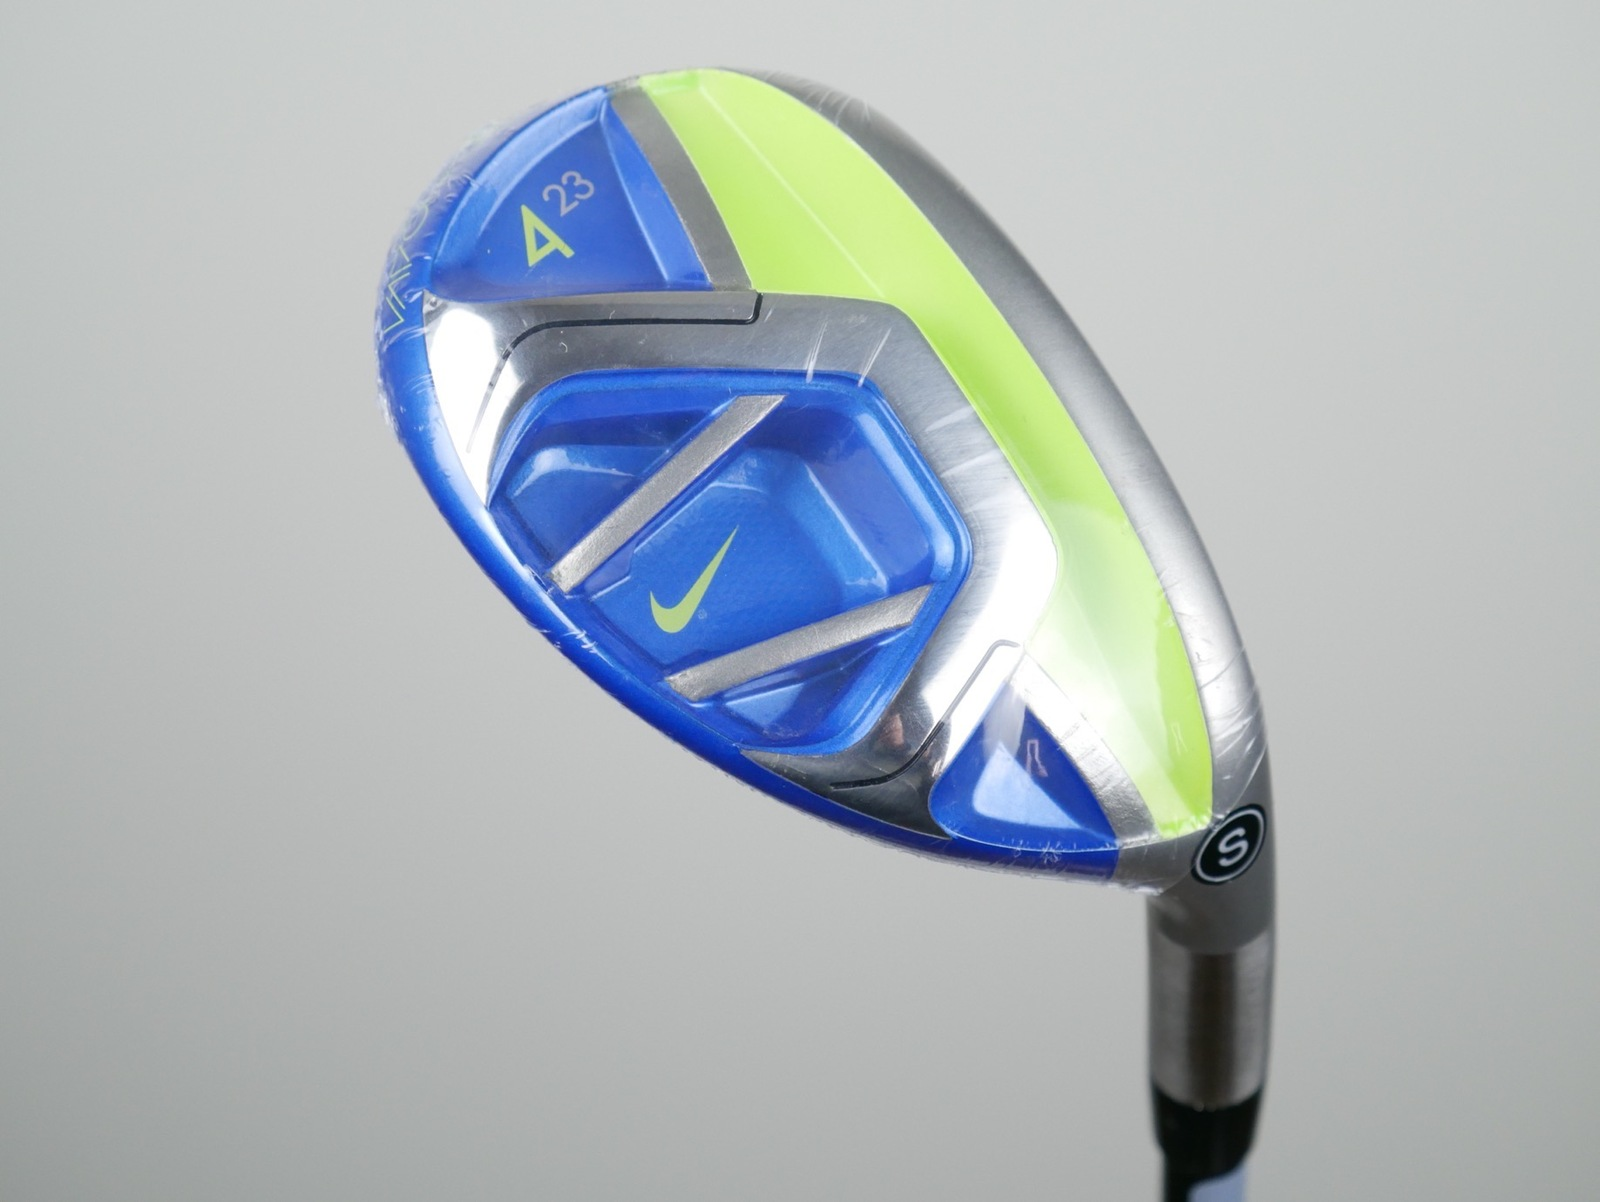 e4e2617b4880 ... NIKE VAPOR FLY  4 HYBRID STIFF FLEX RIGHT HANDED. SKU  3901. Roll over  image to zoom in. Click to open expanded view.  199.00